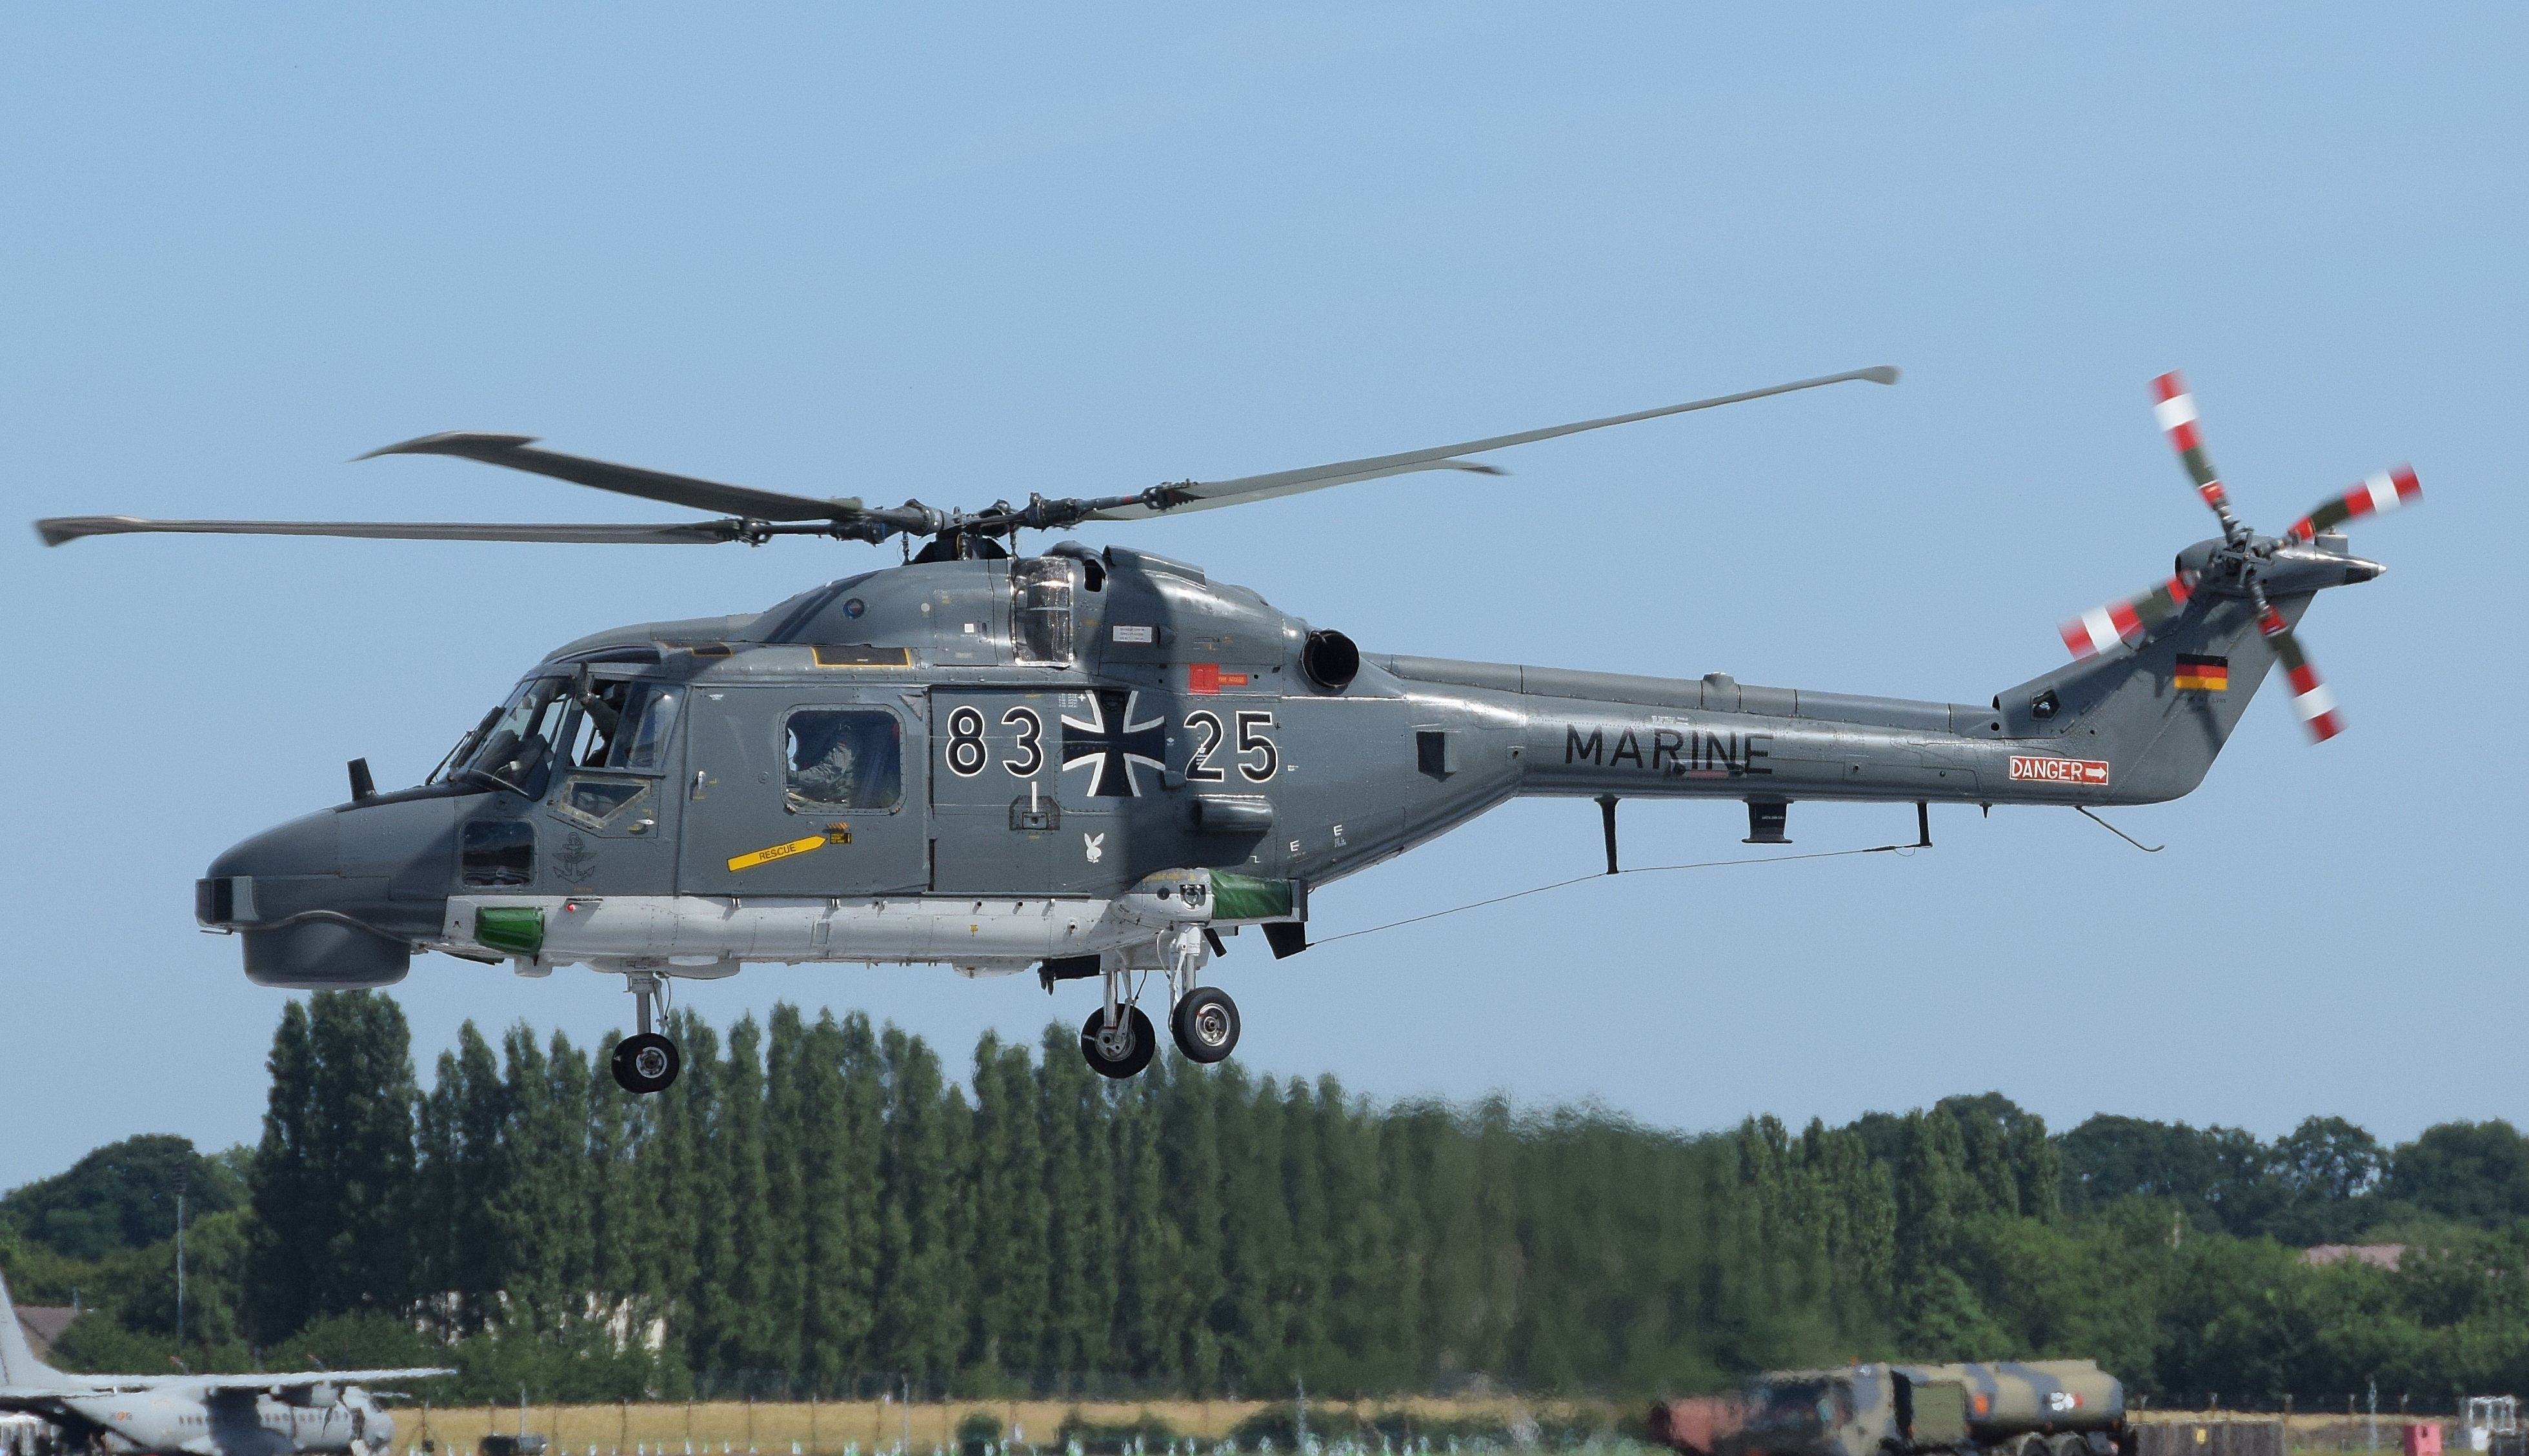 Westland Lynx AH Mk 7 Anti-Tank Ground Attack Helicopter Royal Army Air Corps